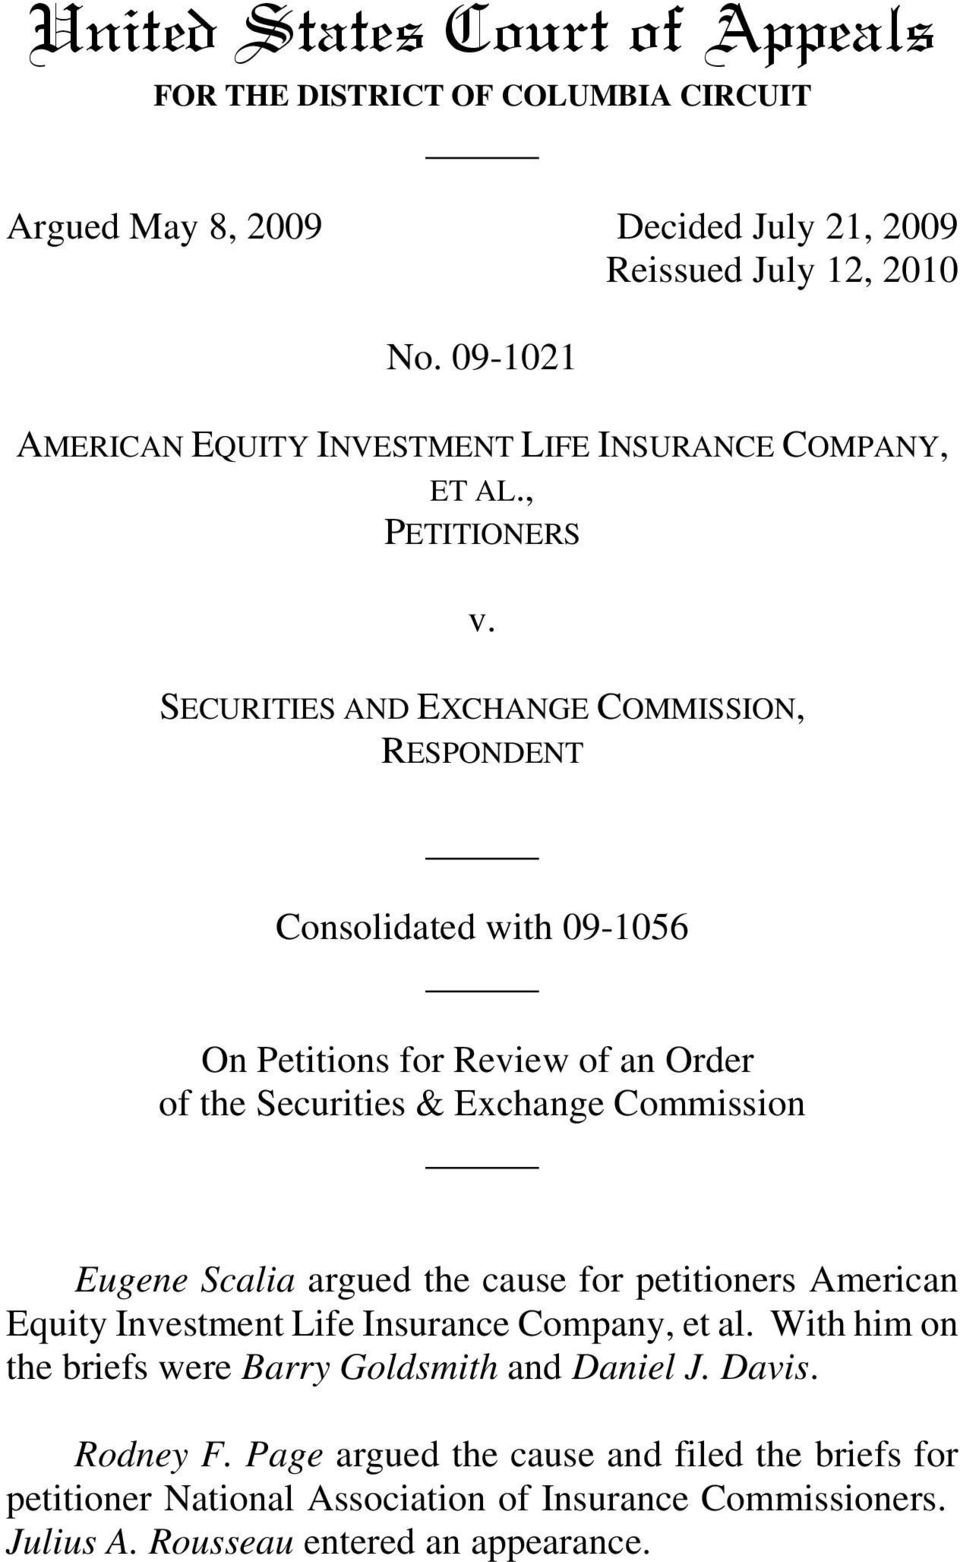 SECURITIES AND EXCHANGE COMMISSION, RESPONDENT Consolidated with 09-1056 On Petitions for Review of an Order of the Securities & Exchange Commission Eugene Scalia argued the